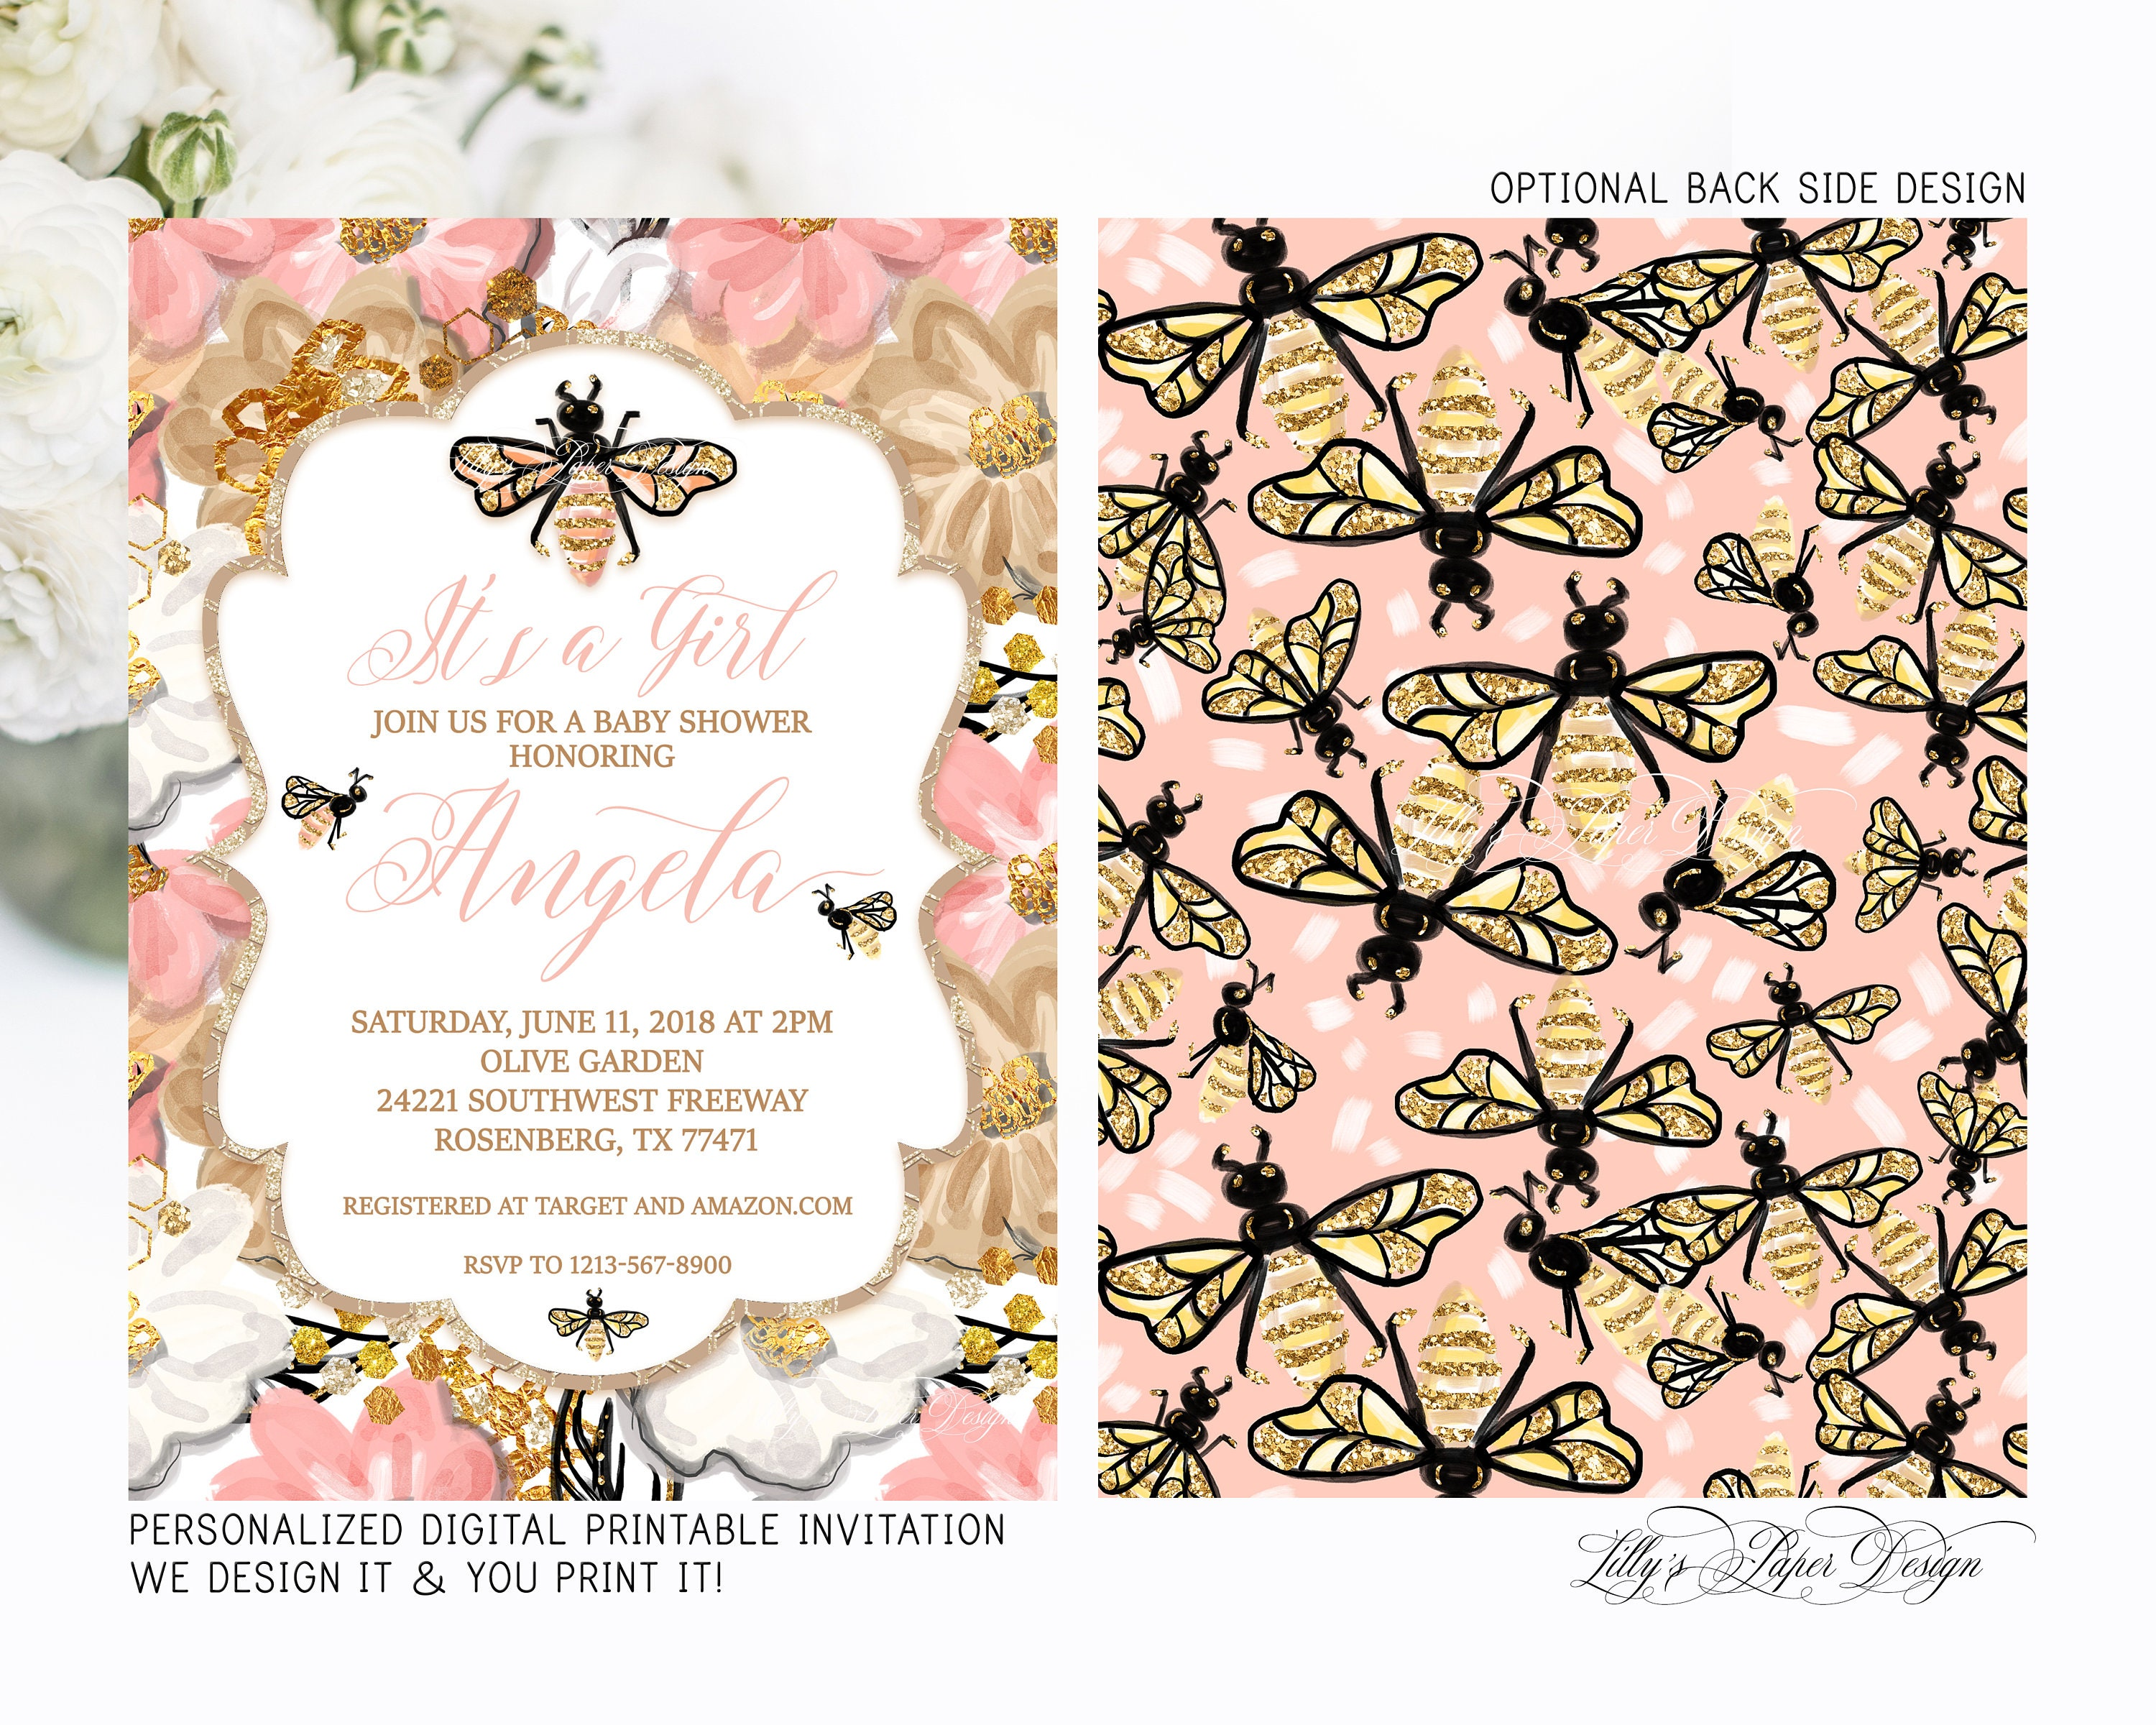 Bee Baby Shower Invitation Bumble Bee Invitation It\'s a